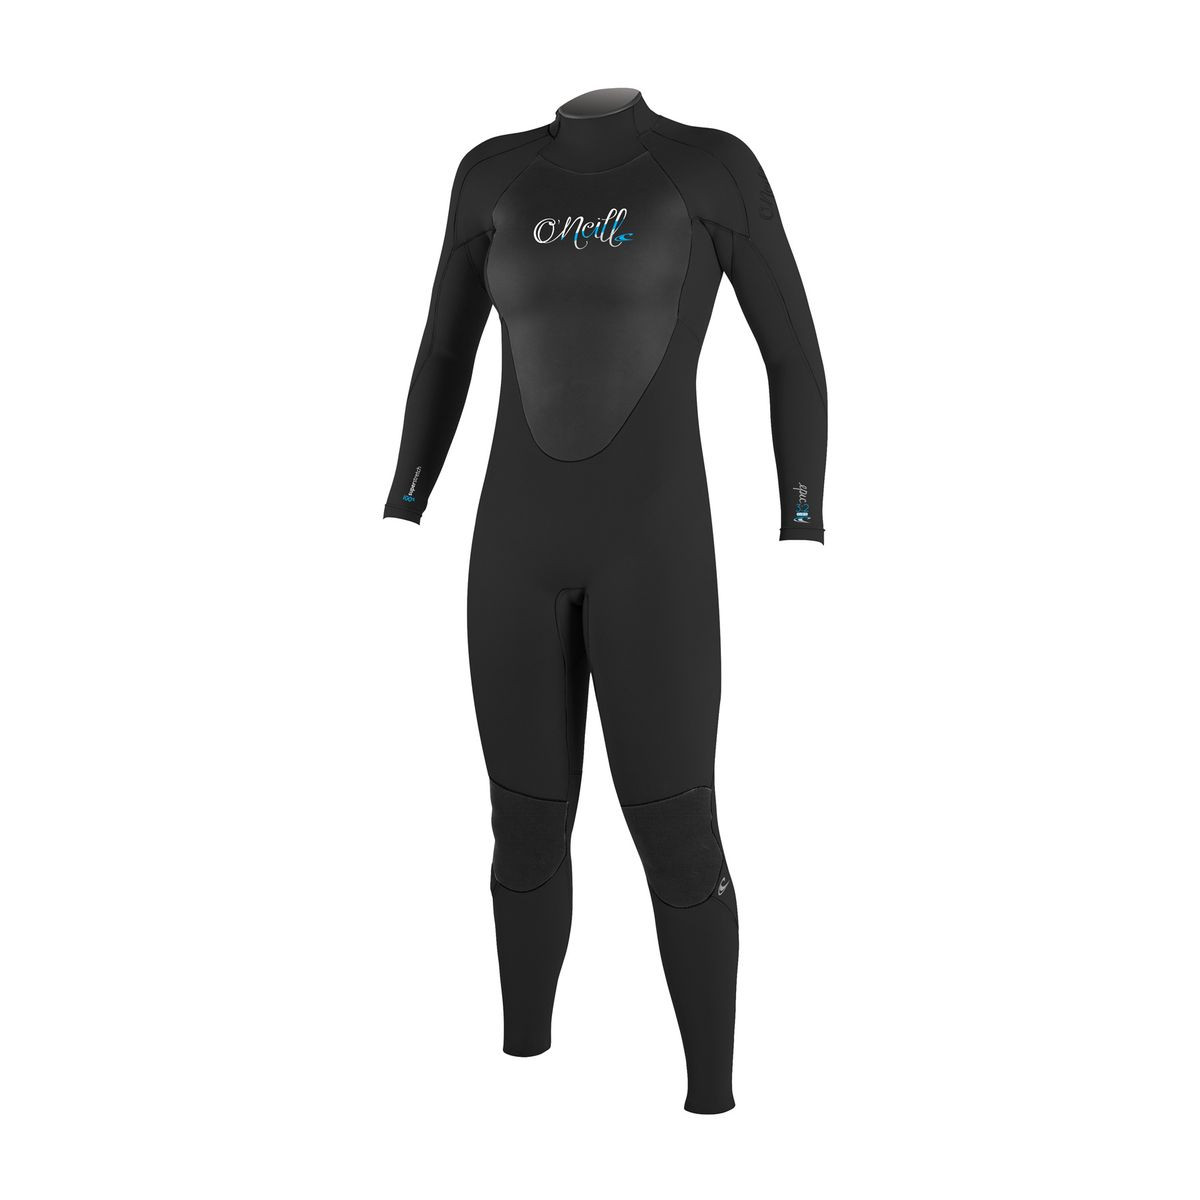 O'Neill Women's Epic 4/3mm Back Zip Wetsuit - Black